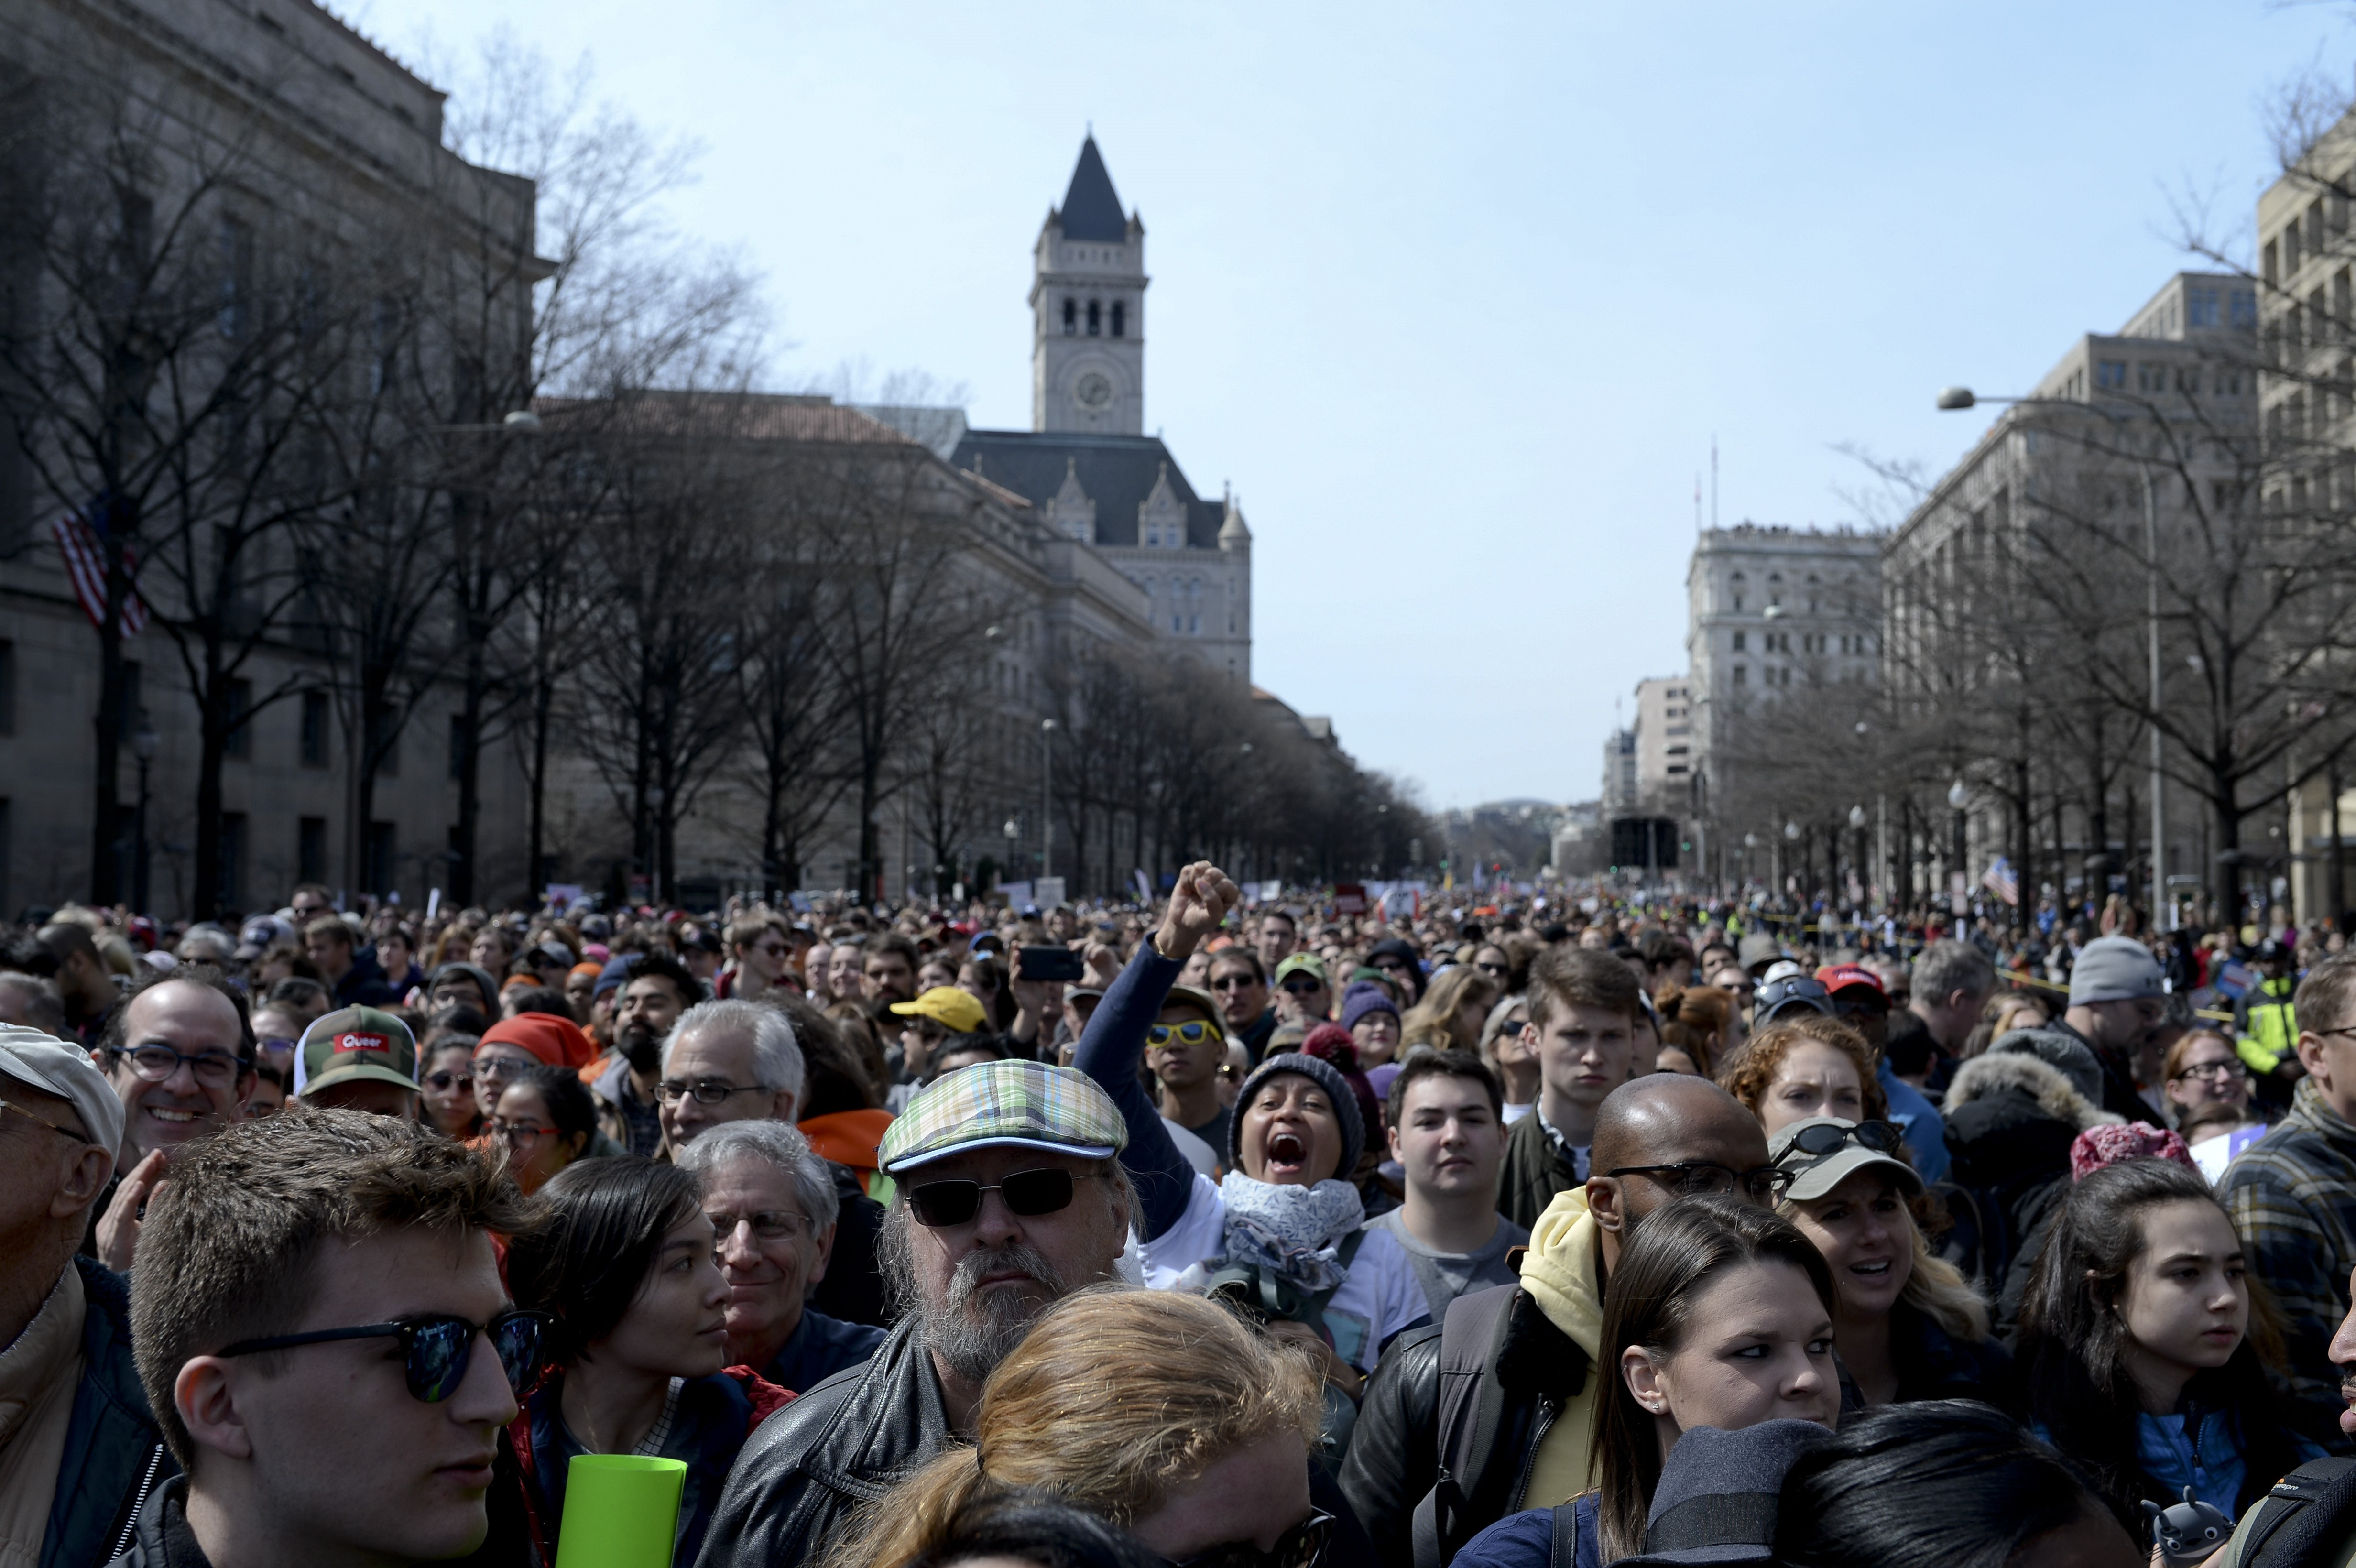 'March for our Lives' Protest in Washington